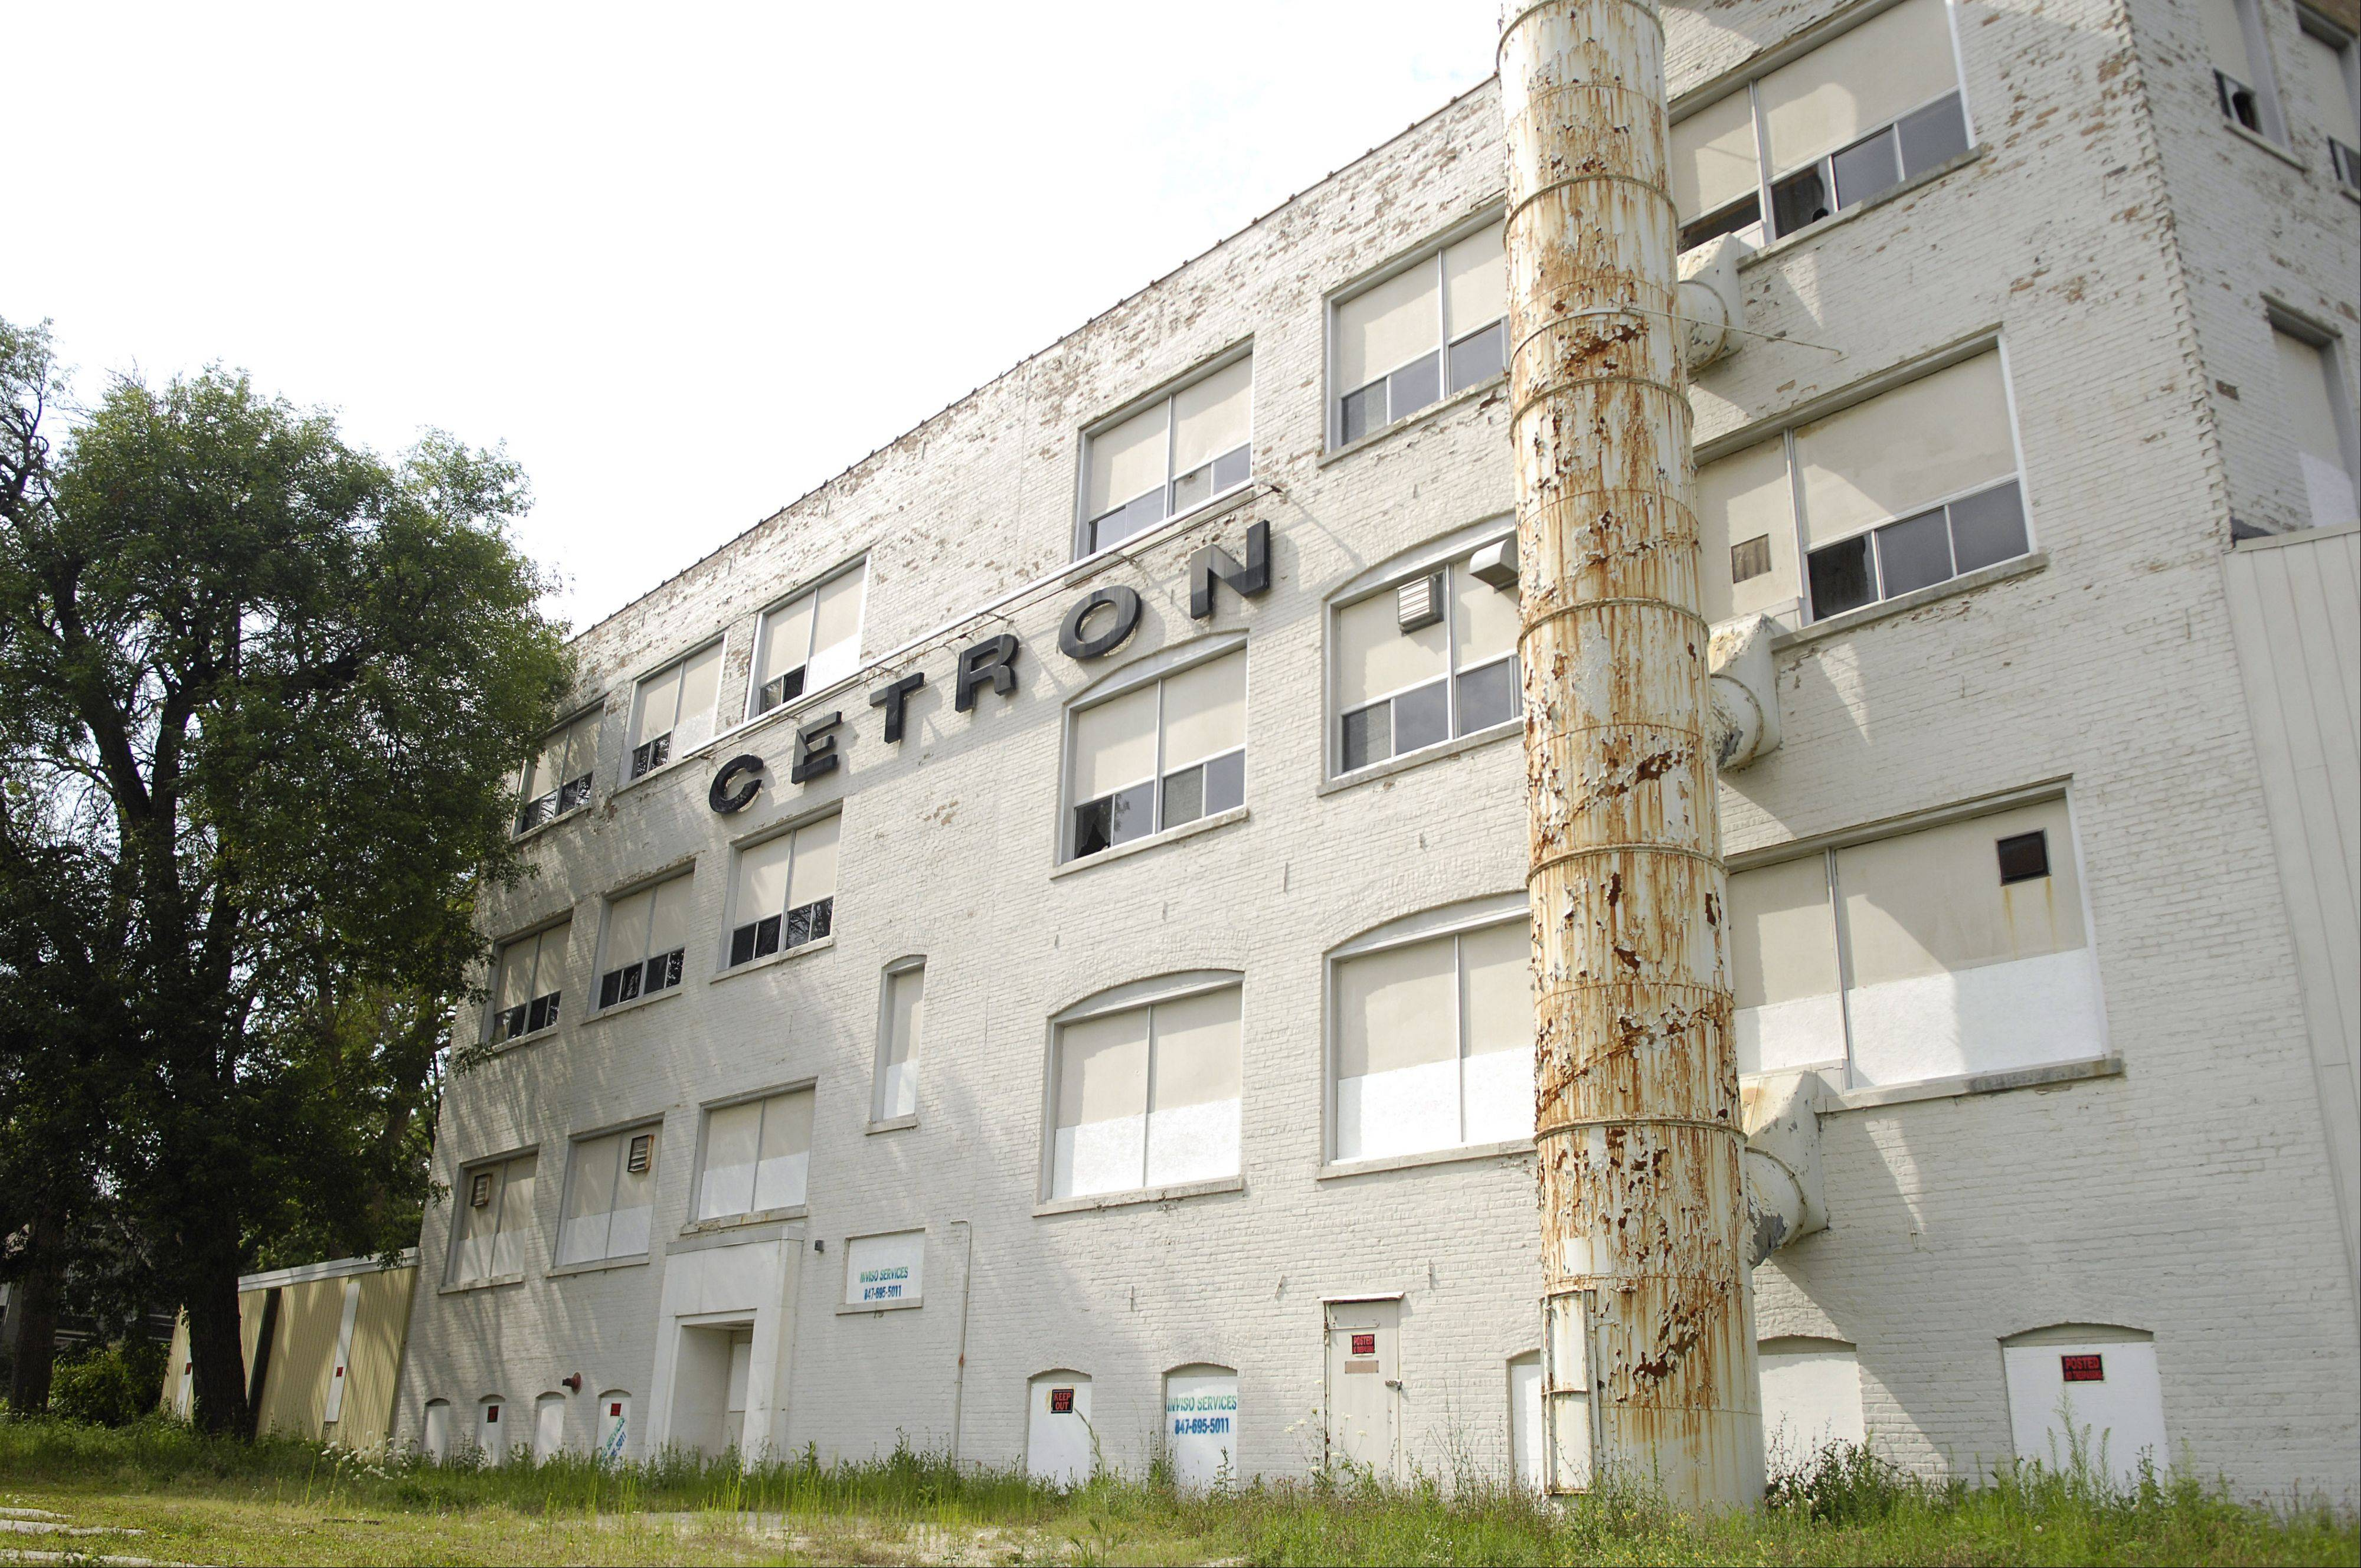 The Geneva Public Library has abandoned plans to buy the former Cetron factory on Richards Street.